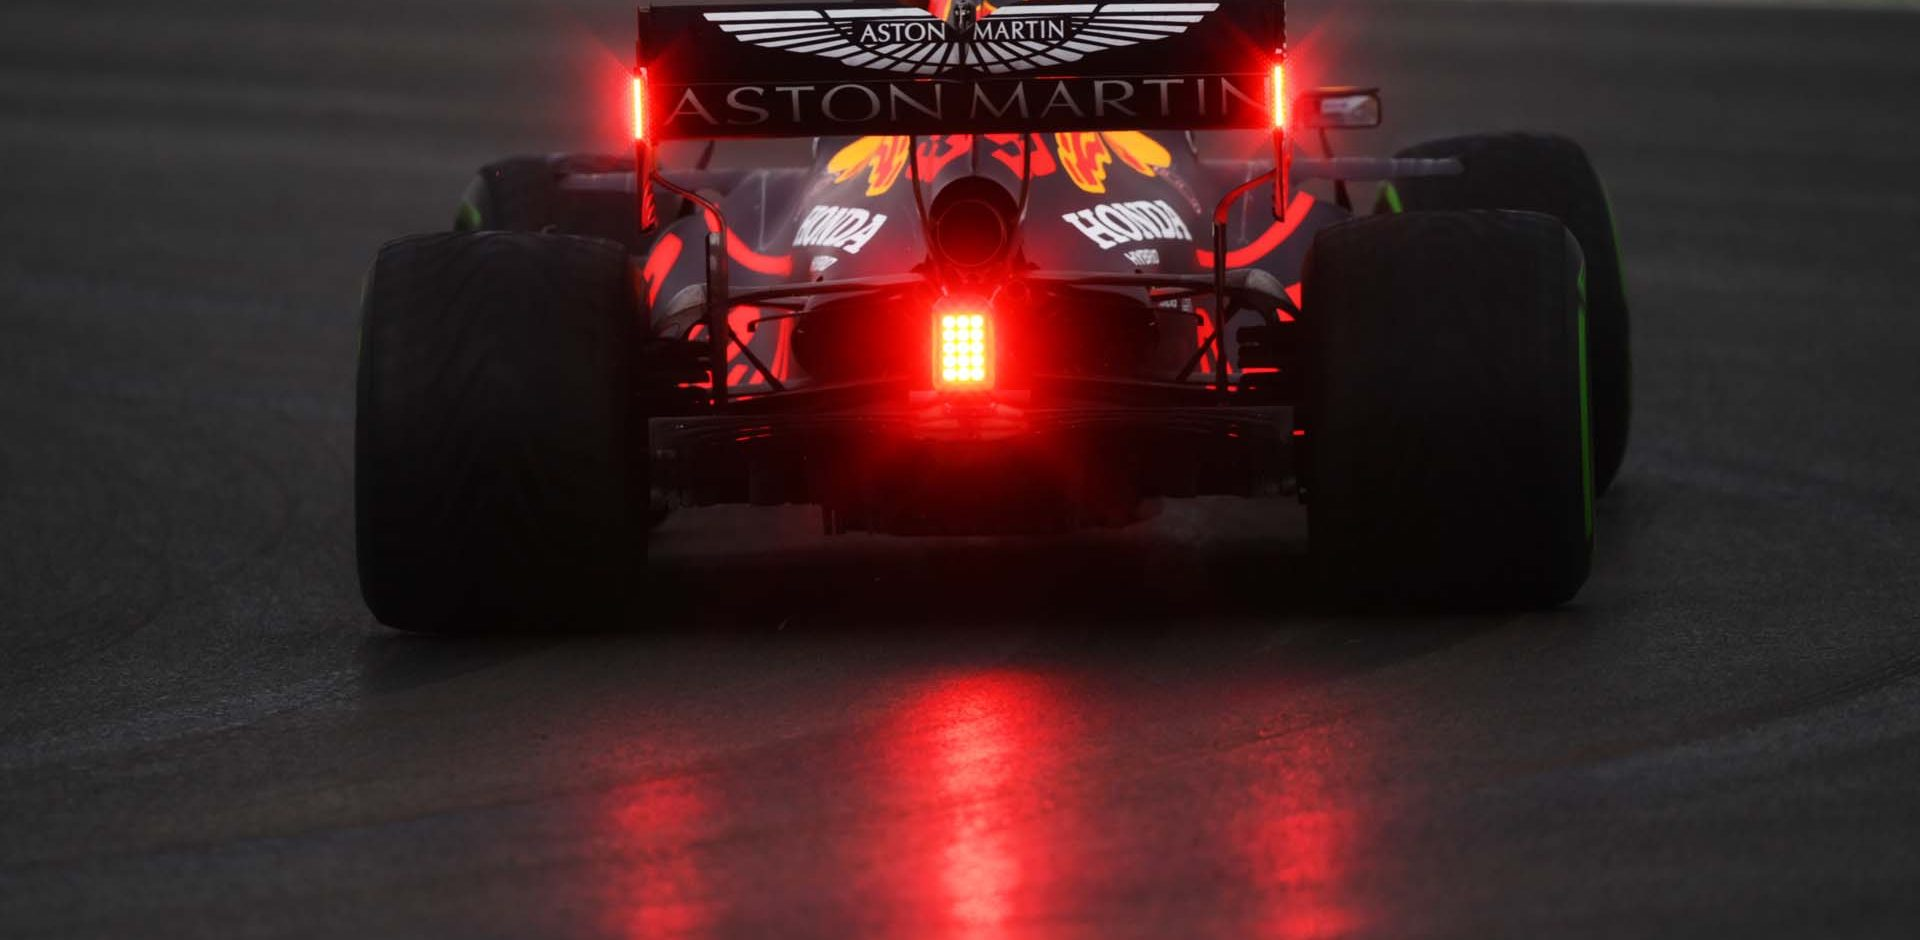 ISTANBUL, TURKEY - NOVEMBER 14: Max Verstappen of the Netherlands driving the (33) Aston Martin Red Bull Racing RB16 on track during final practice ahead of the F1 Grand Prix of Turkey at Intercity Istanbul Park on November 14, 2020 in Istanbul, Turkey. (Photo by Clive Mason/Getty Images)